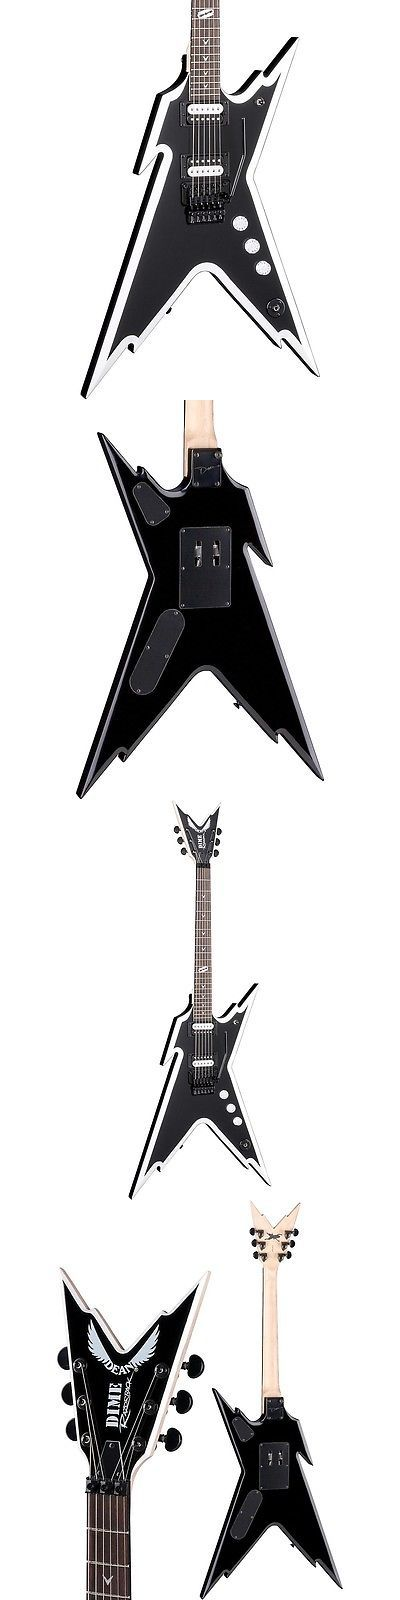 musical instruments: Dean Dimebag Razorback Db Electric Guitar With Floyd Rose Bridge Black And White BUY IT NOW ONLY: $299.0